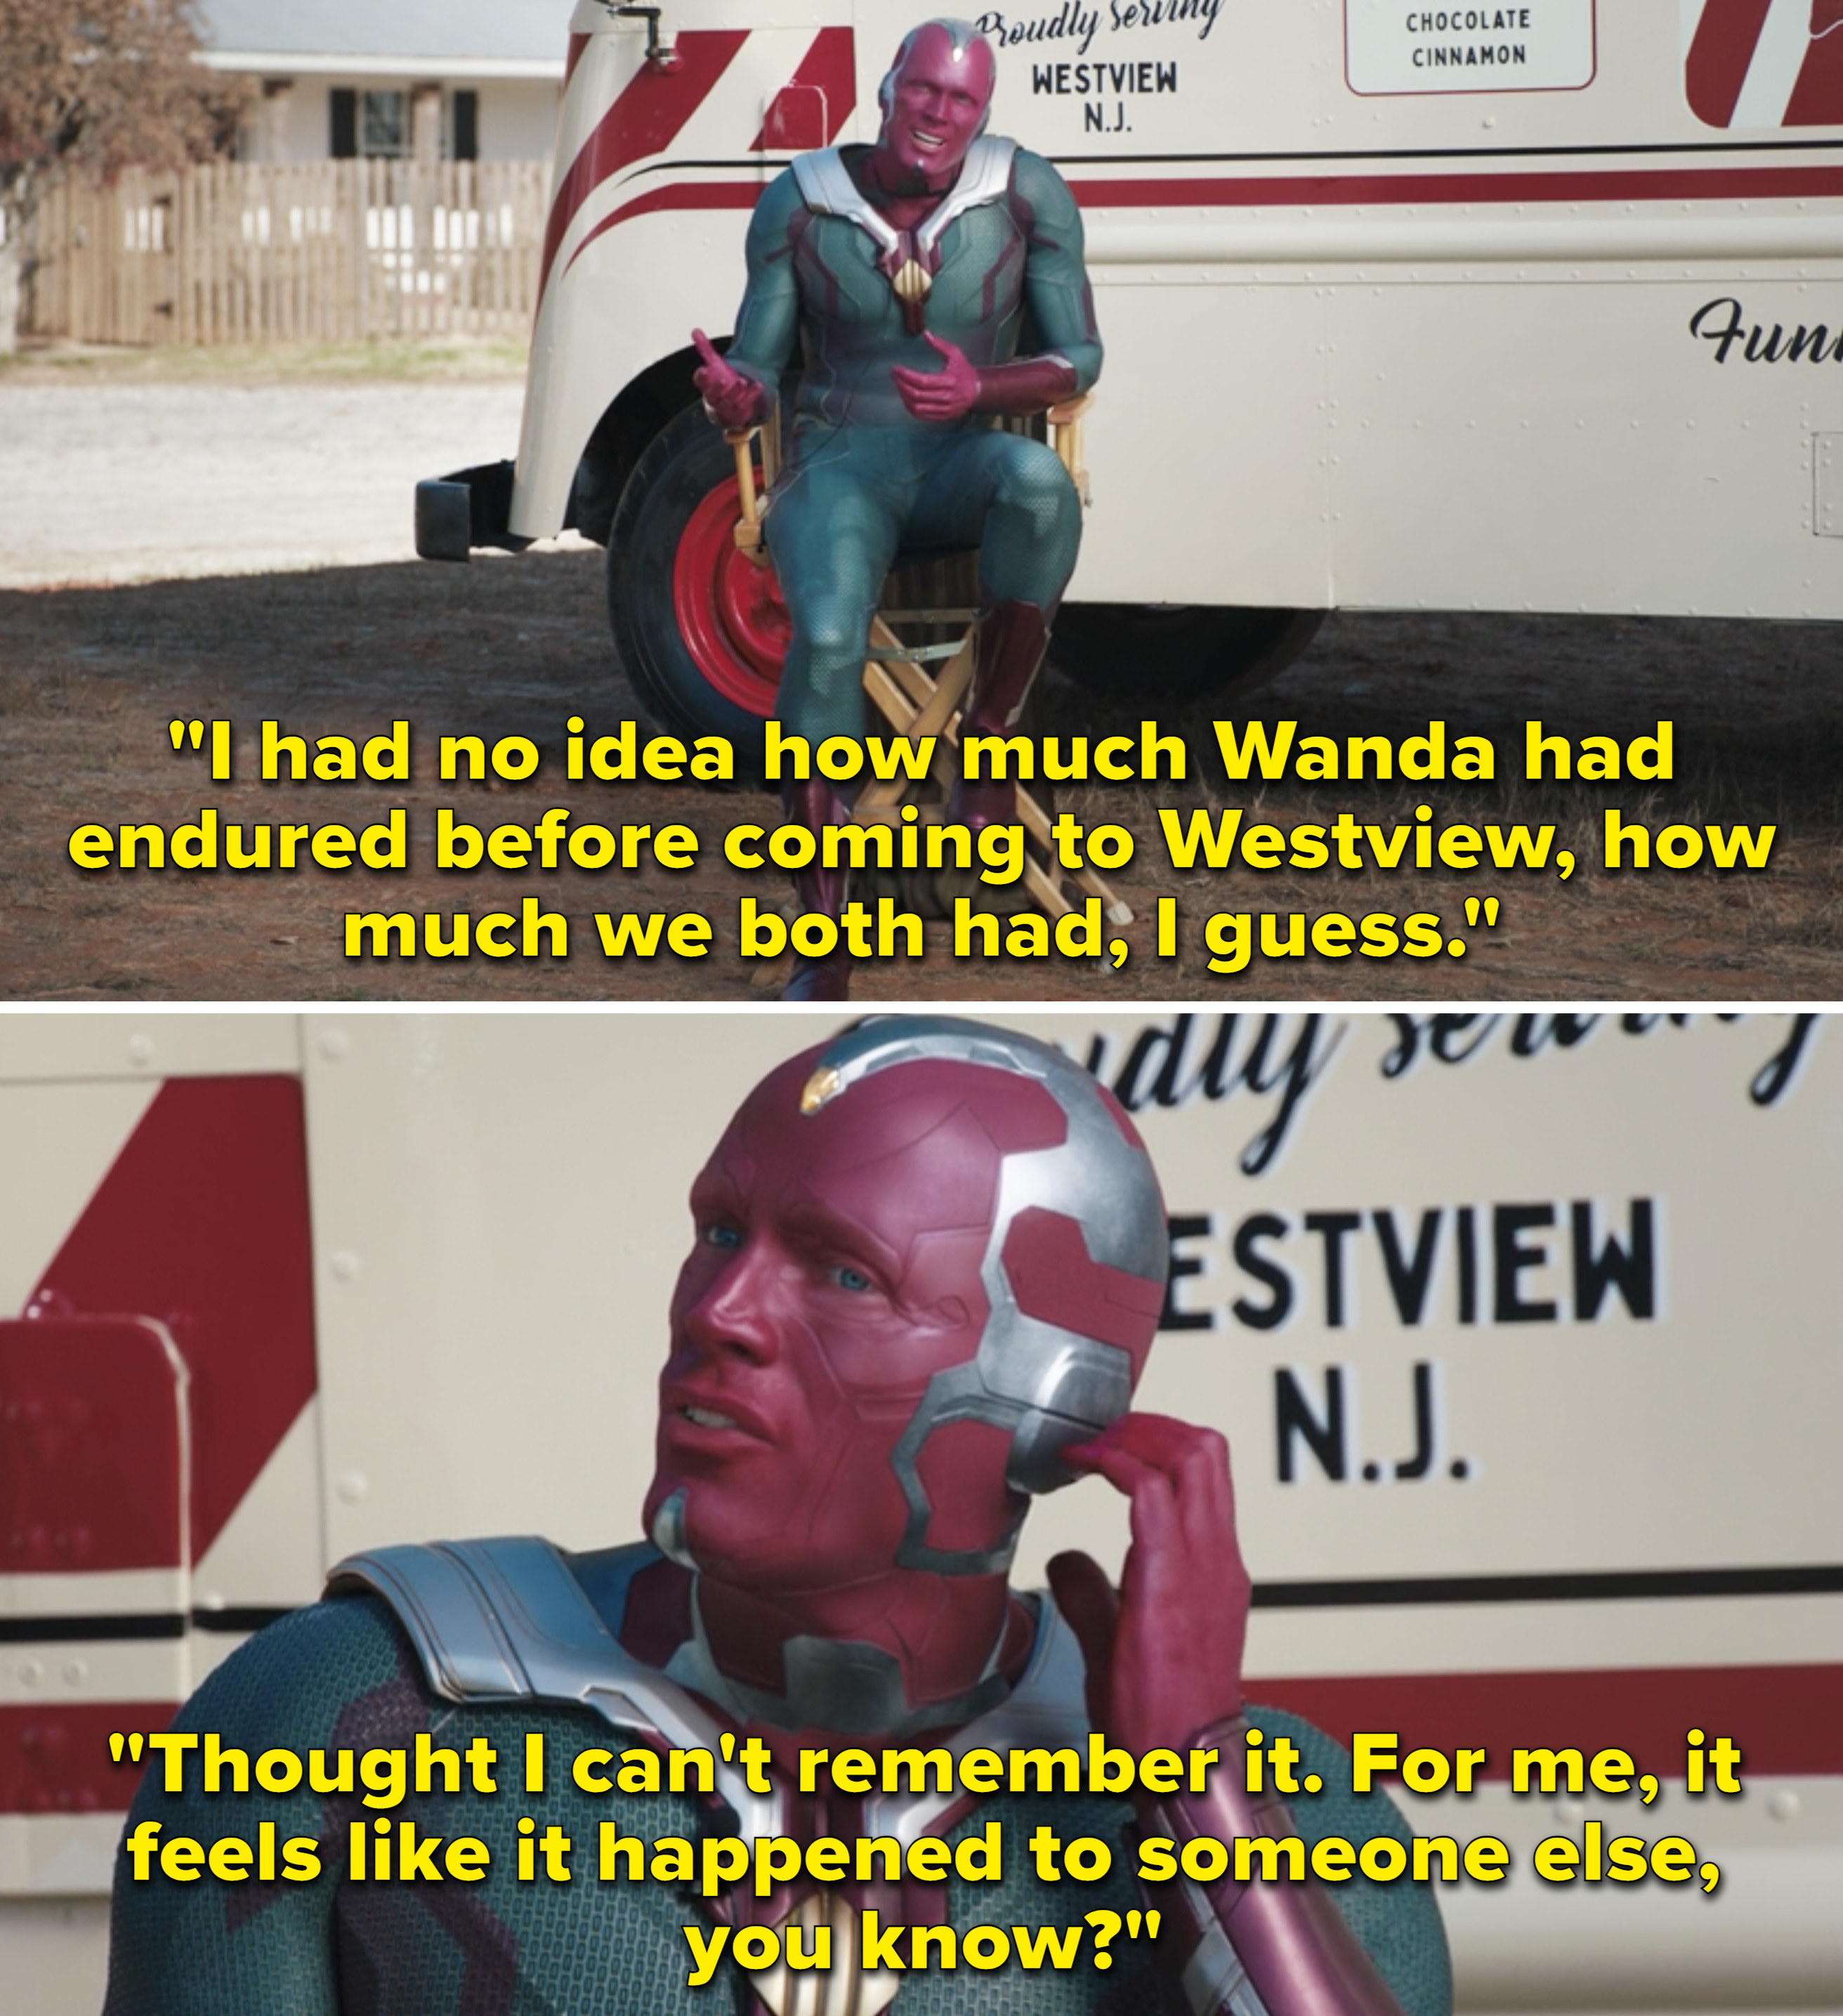 Vision talking to the camera and saying how he didn't realize how much Wanda went through before coming to Westview